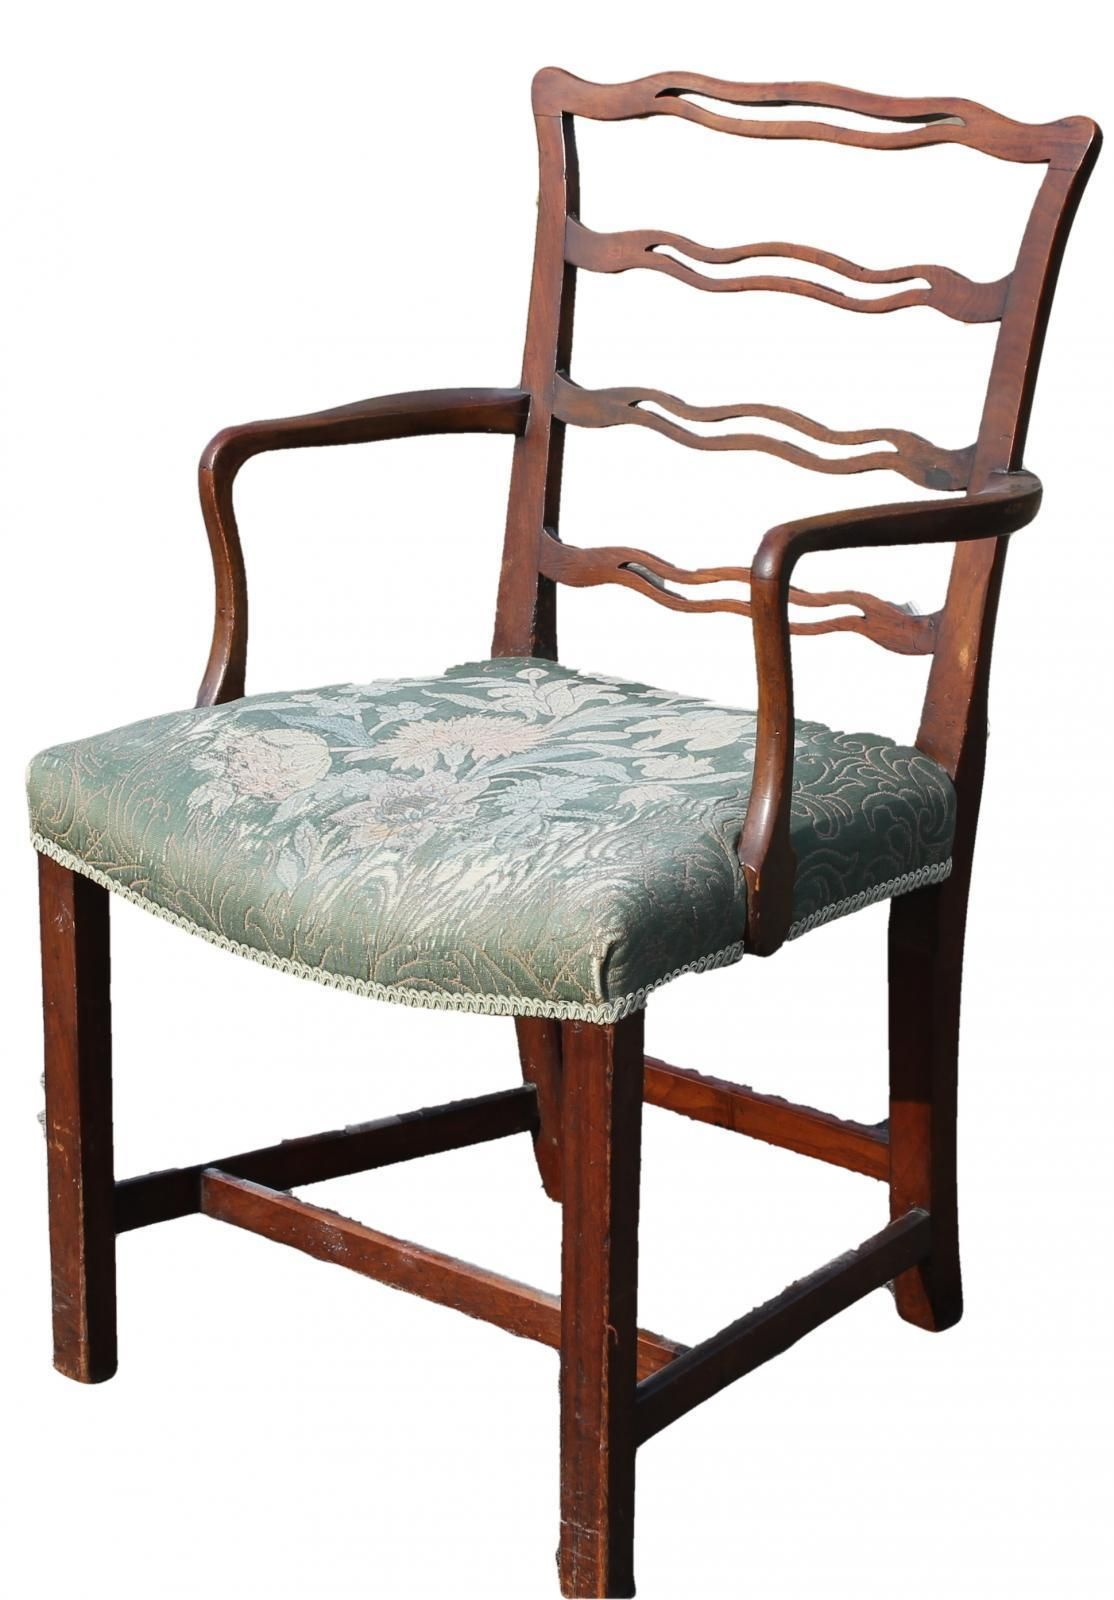 Victorian Mahogany Desk Chair | Looking For Antiques - Victorian Mahogany Desk Chair Looking For Antiques Looking For